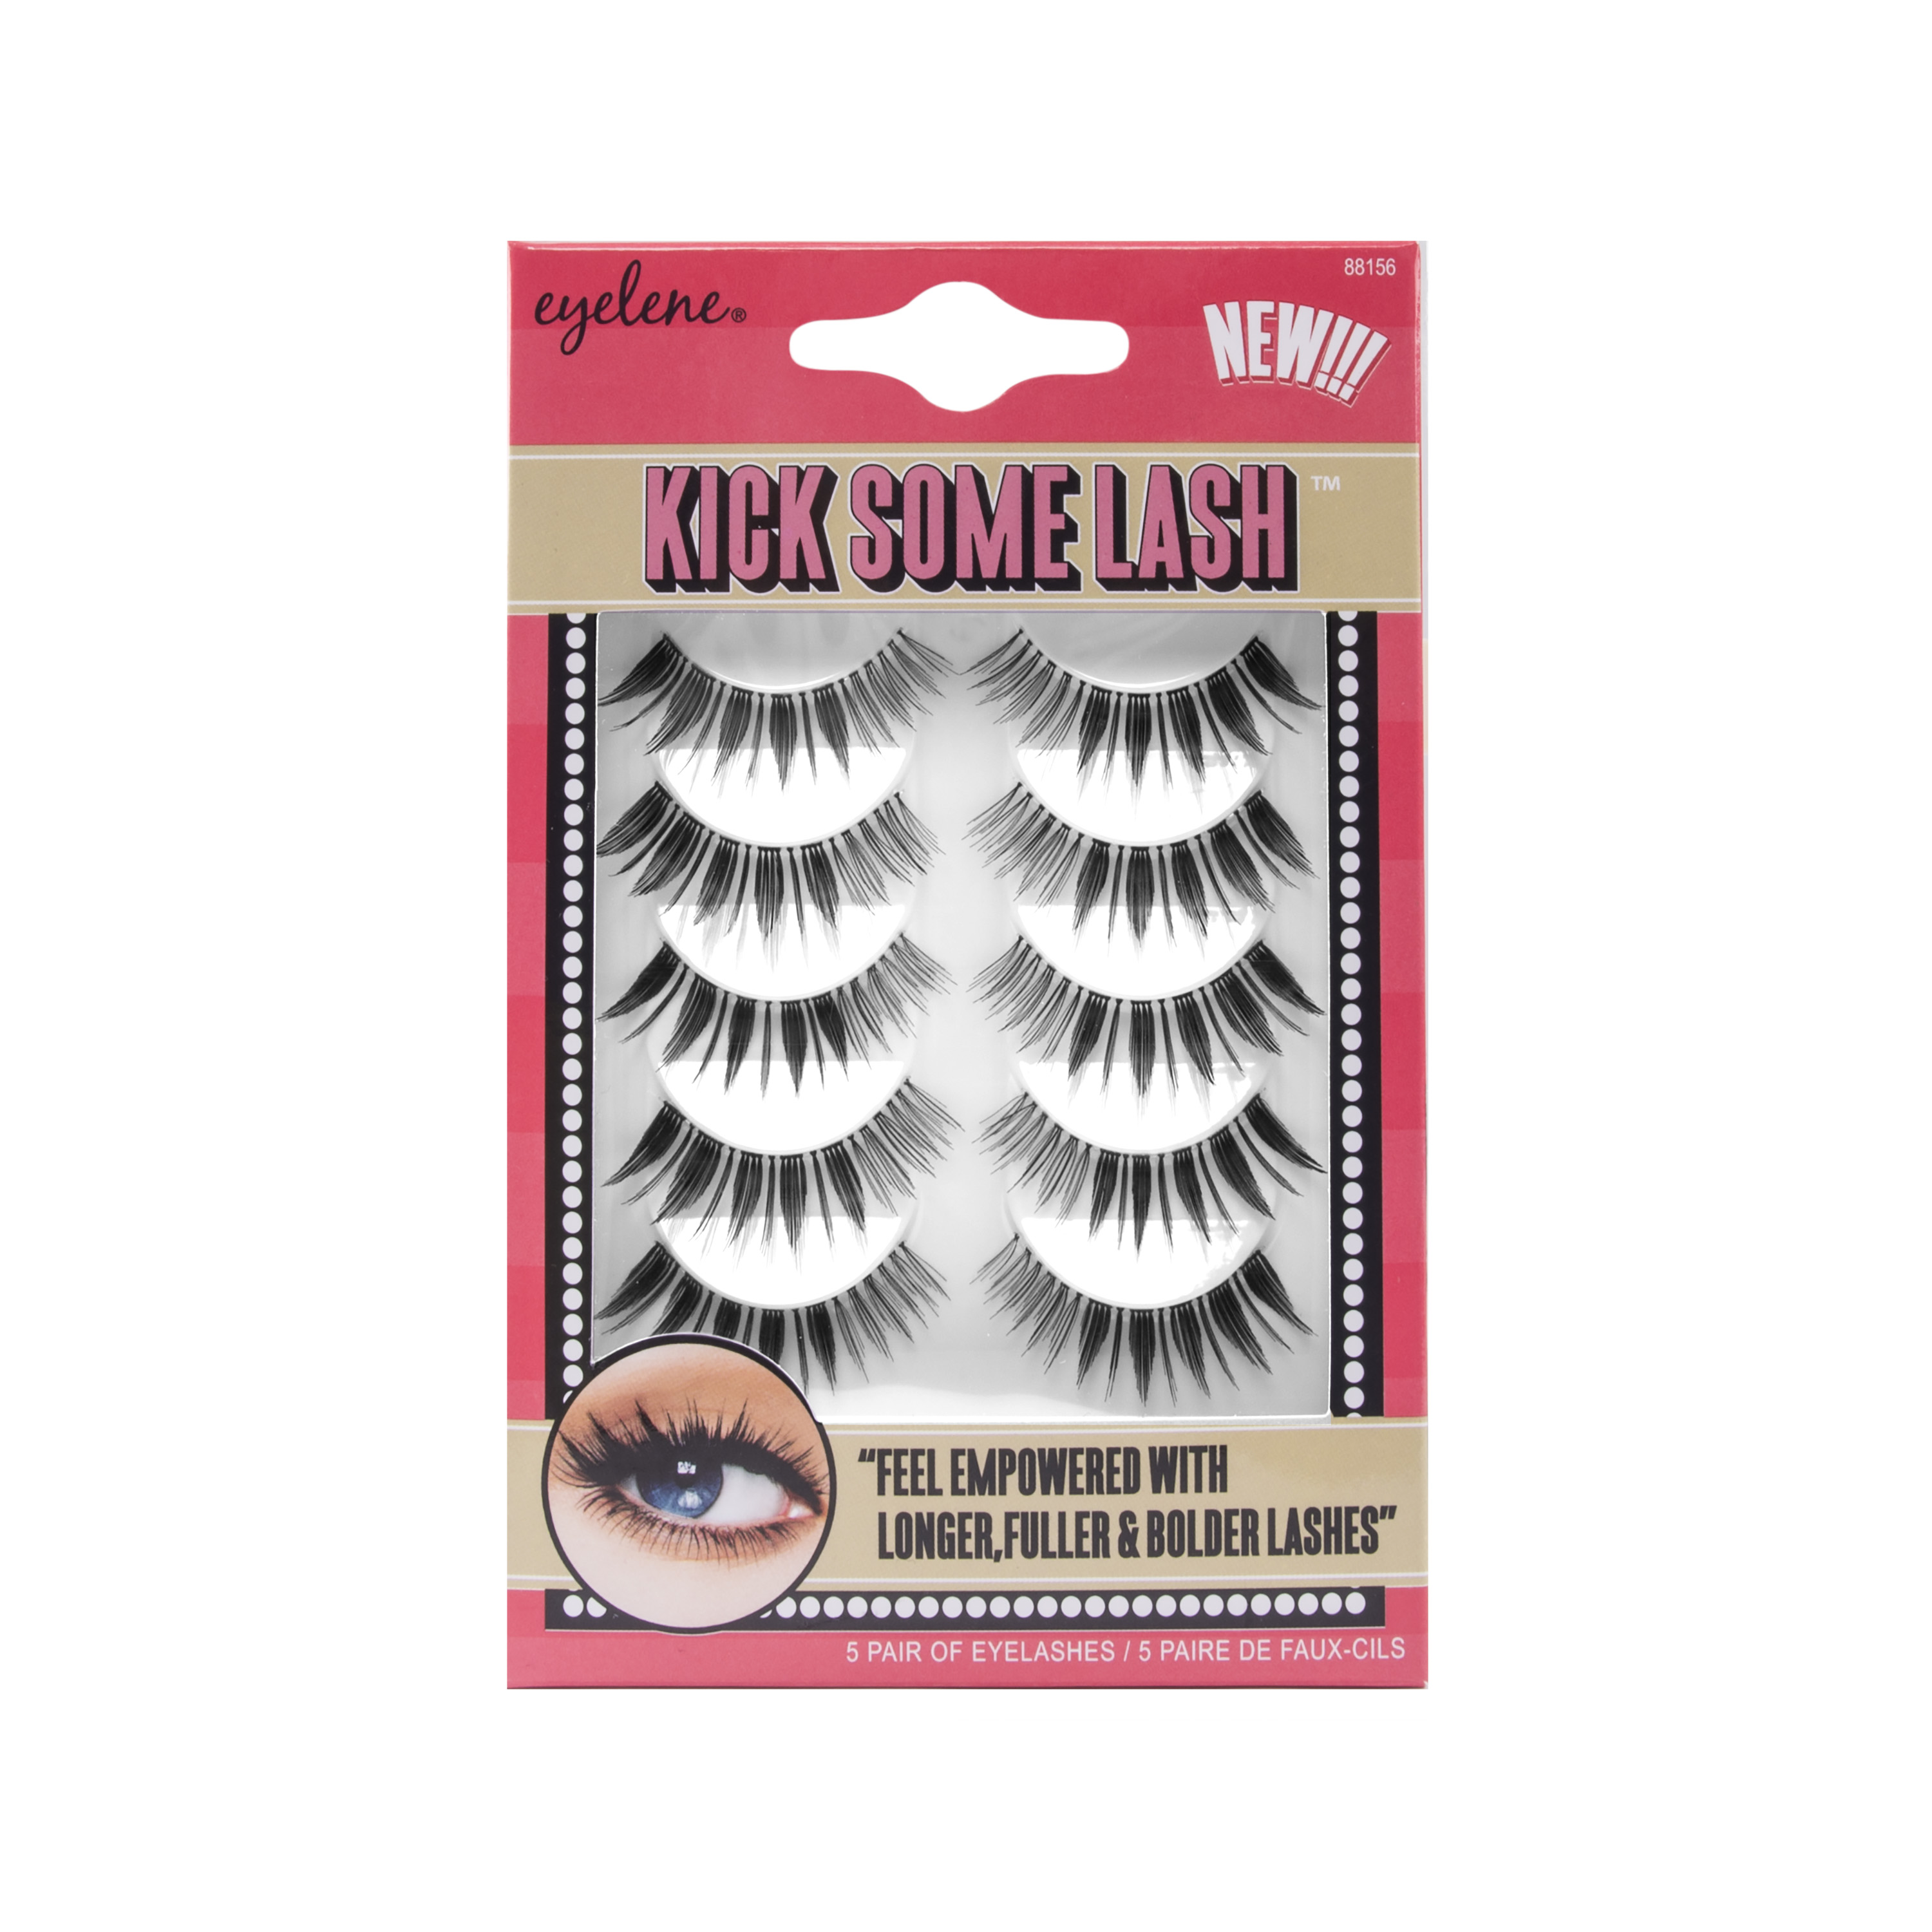 Eyelene Kick Some Lash False Eyelashes 88156